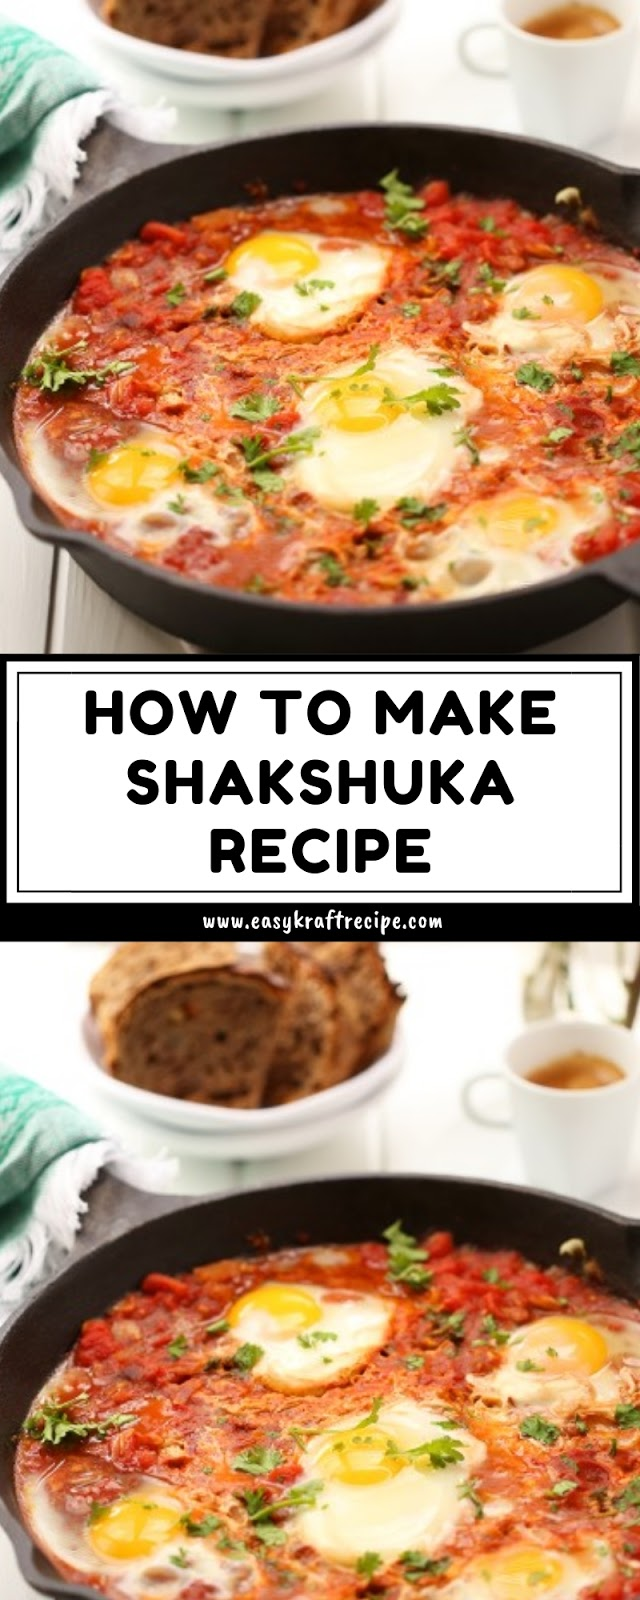 HOW TO MAKE SHAKSHUKA RECIPE